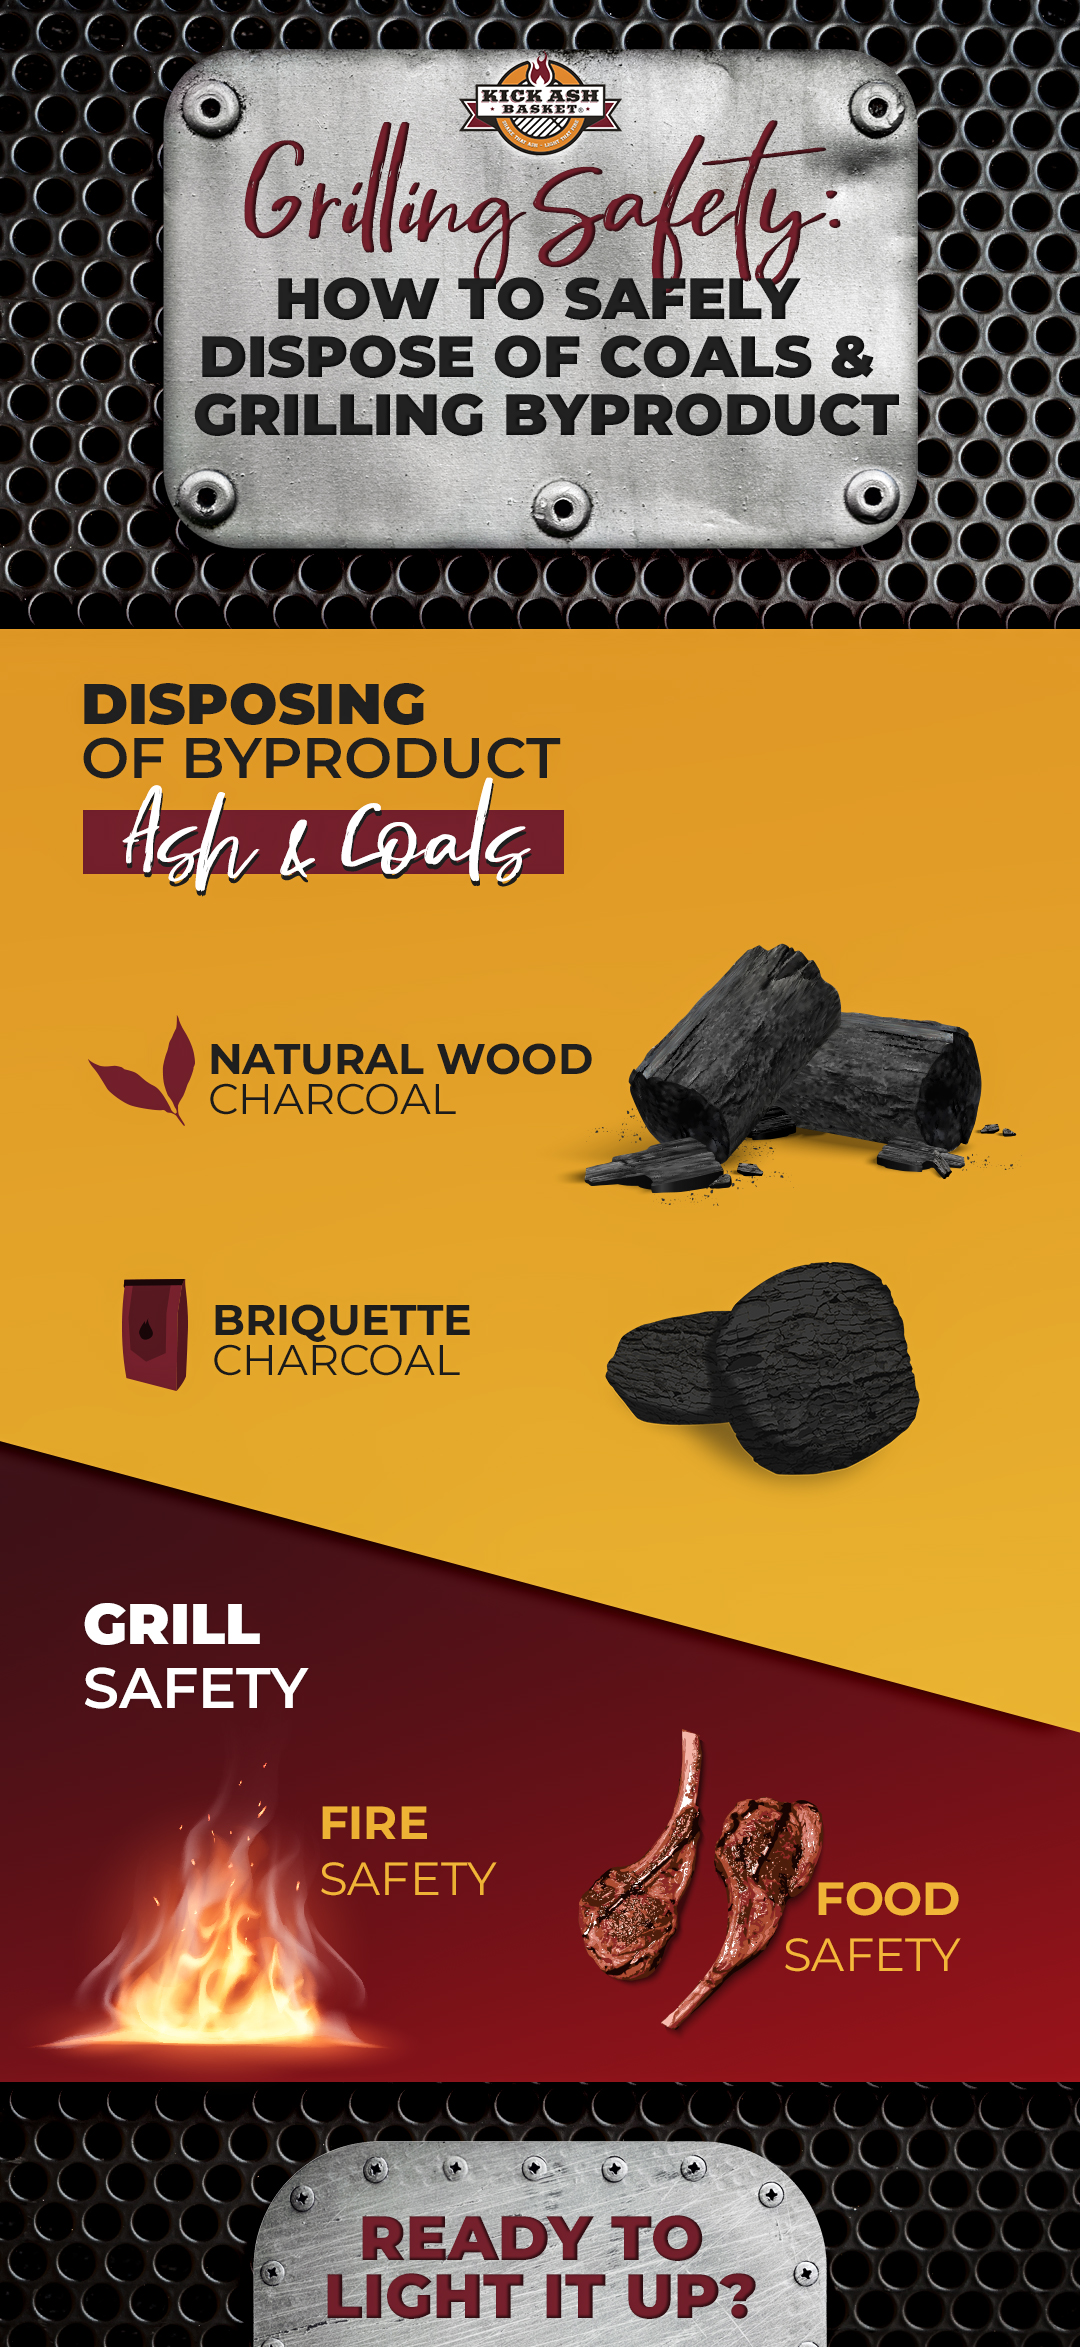 guide on how to safely dispose coals & grilling byproducts